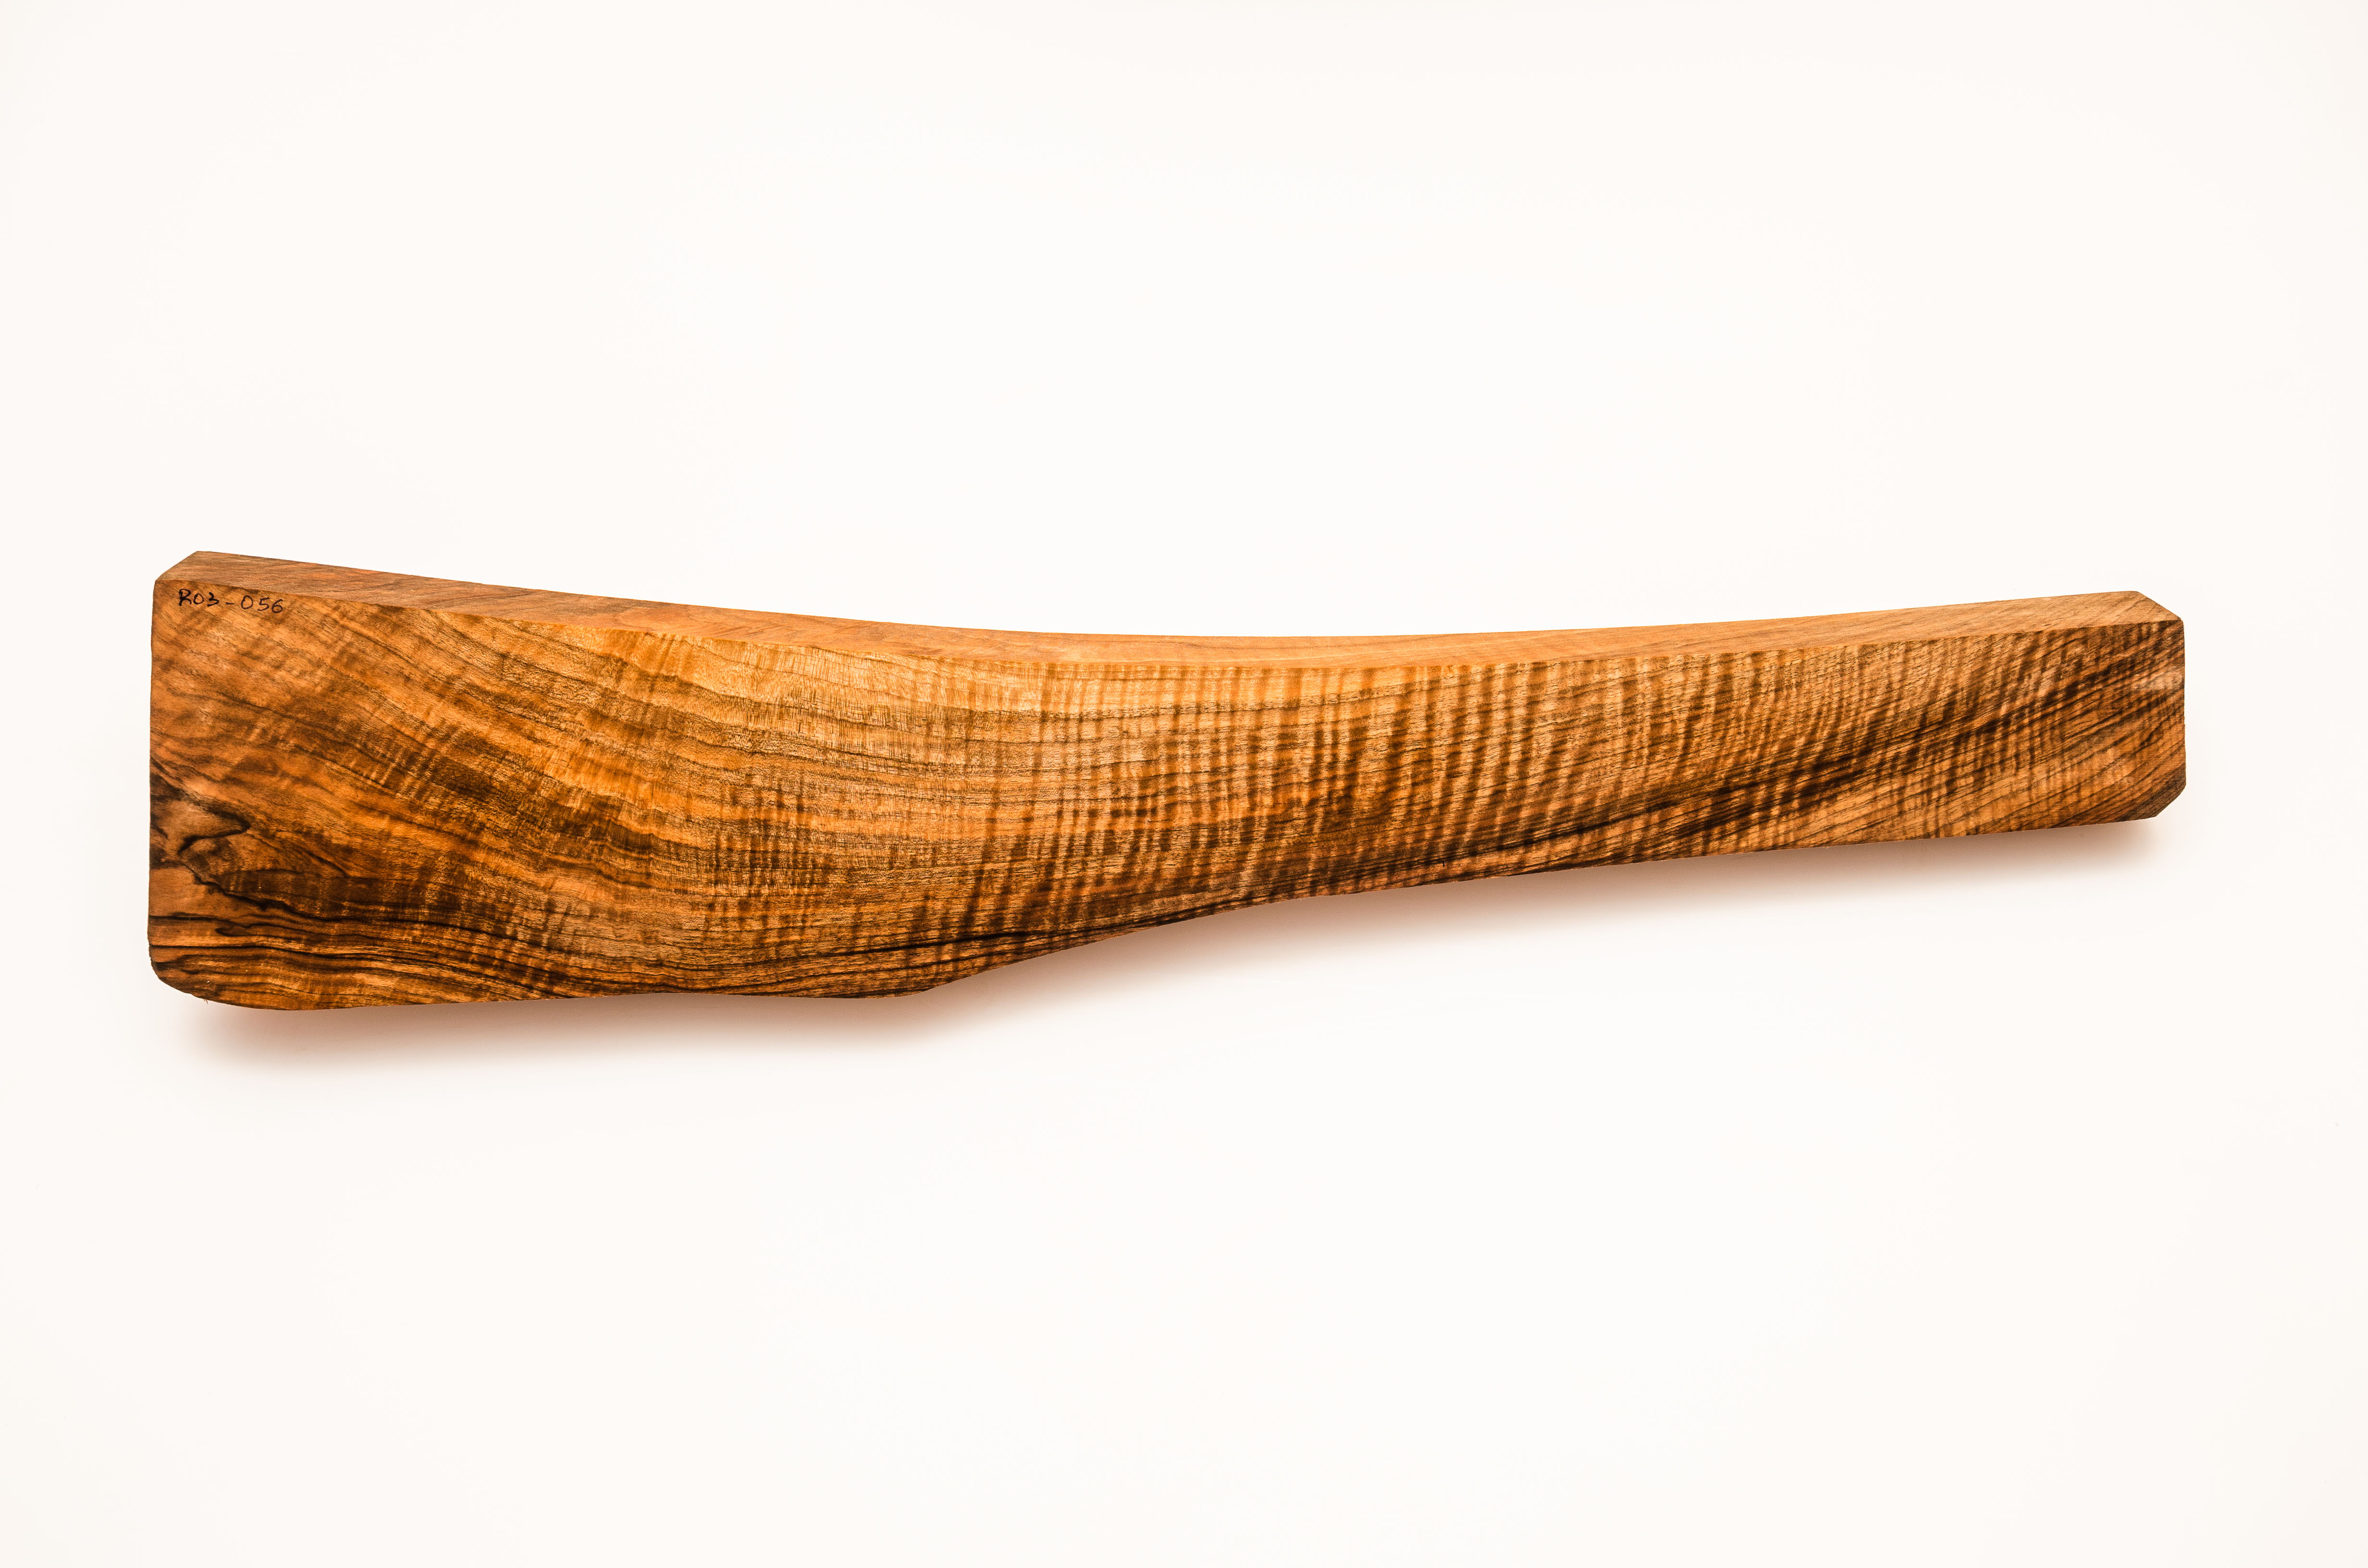 walnut_stock_blanks_for_guns_and_rifles-1494